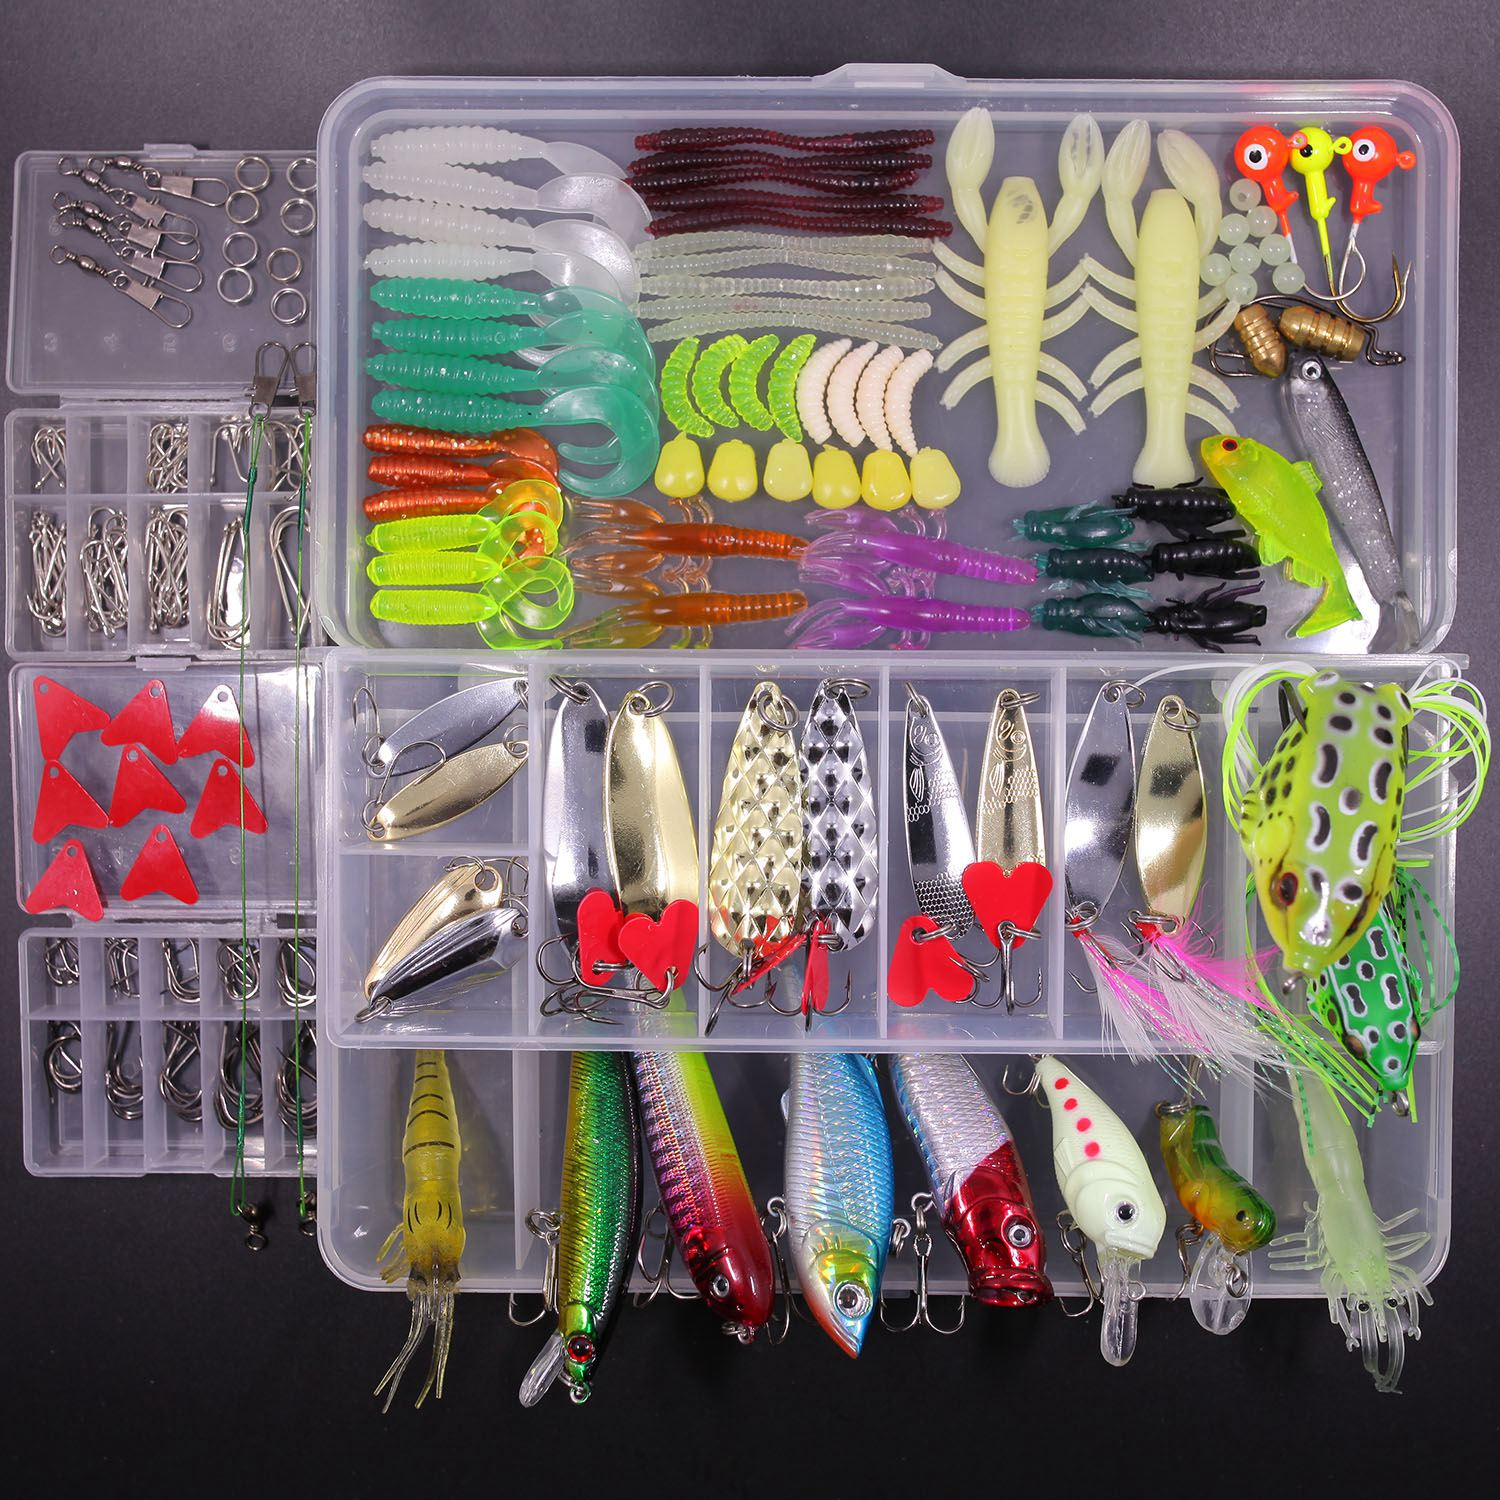 Fishing Lures Kit 234pcs Fishing Lure Baits Life-like Swimbait 3D Fishing Eyes for Bass Trout Salm in Saltwater Freshwater wit afishlure hard lures baits popper 118mm 18g artificial fishing tackle swimbait hard lure for carp fishing trout plastic fishing